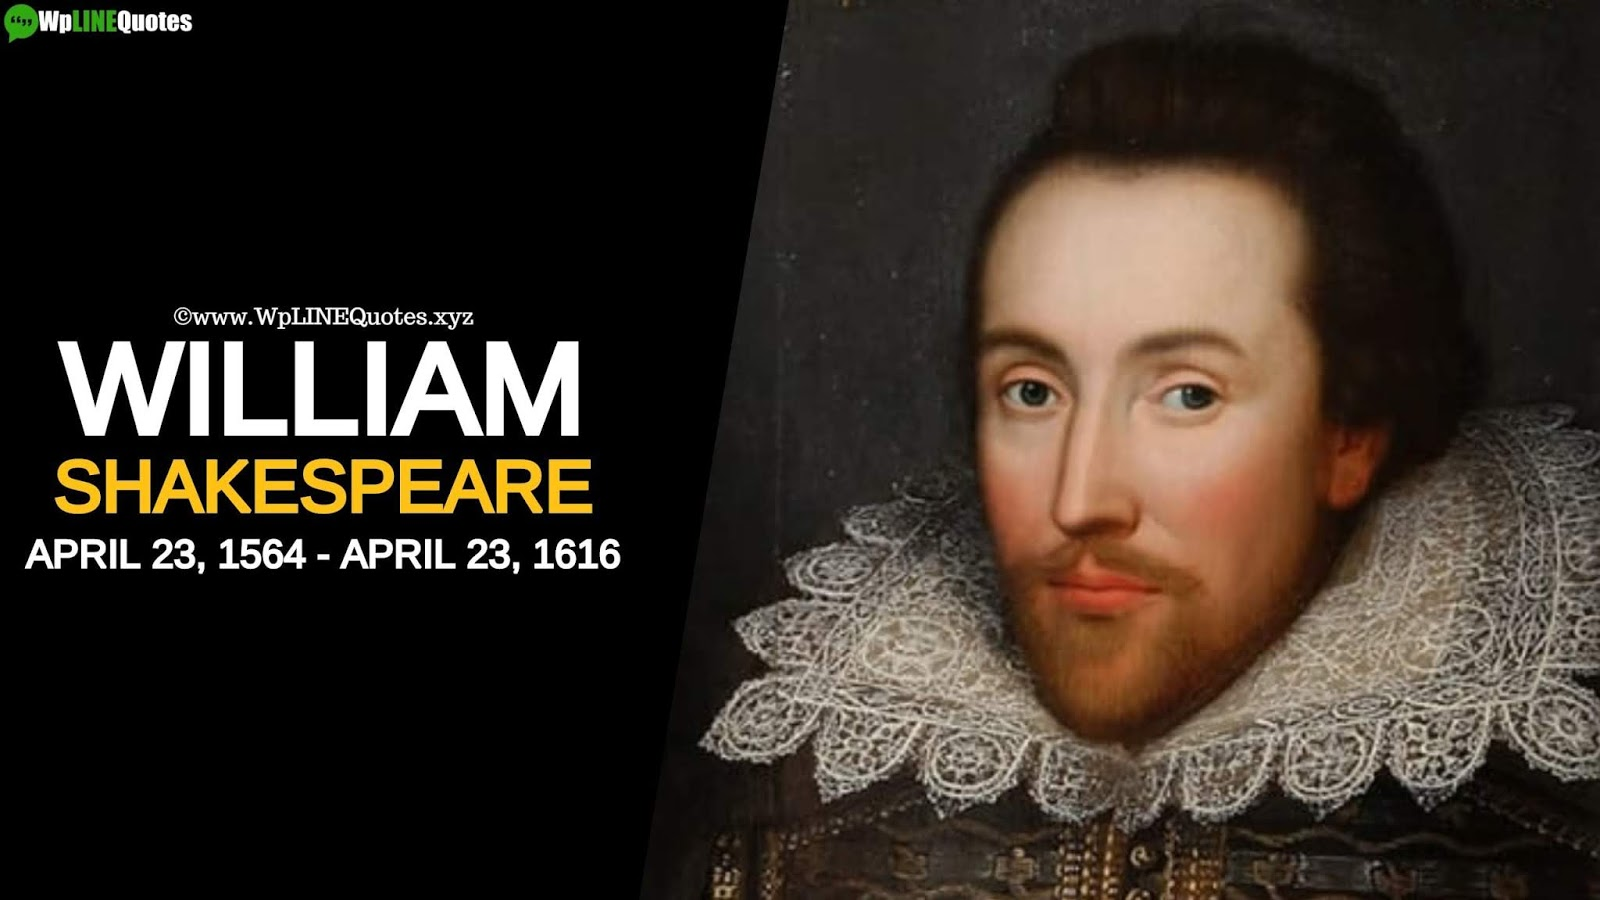 Shakespeare Birthday Quotes, Wishes, Message, Greeting, Images, Photos, Pictures